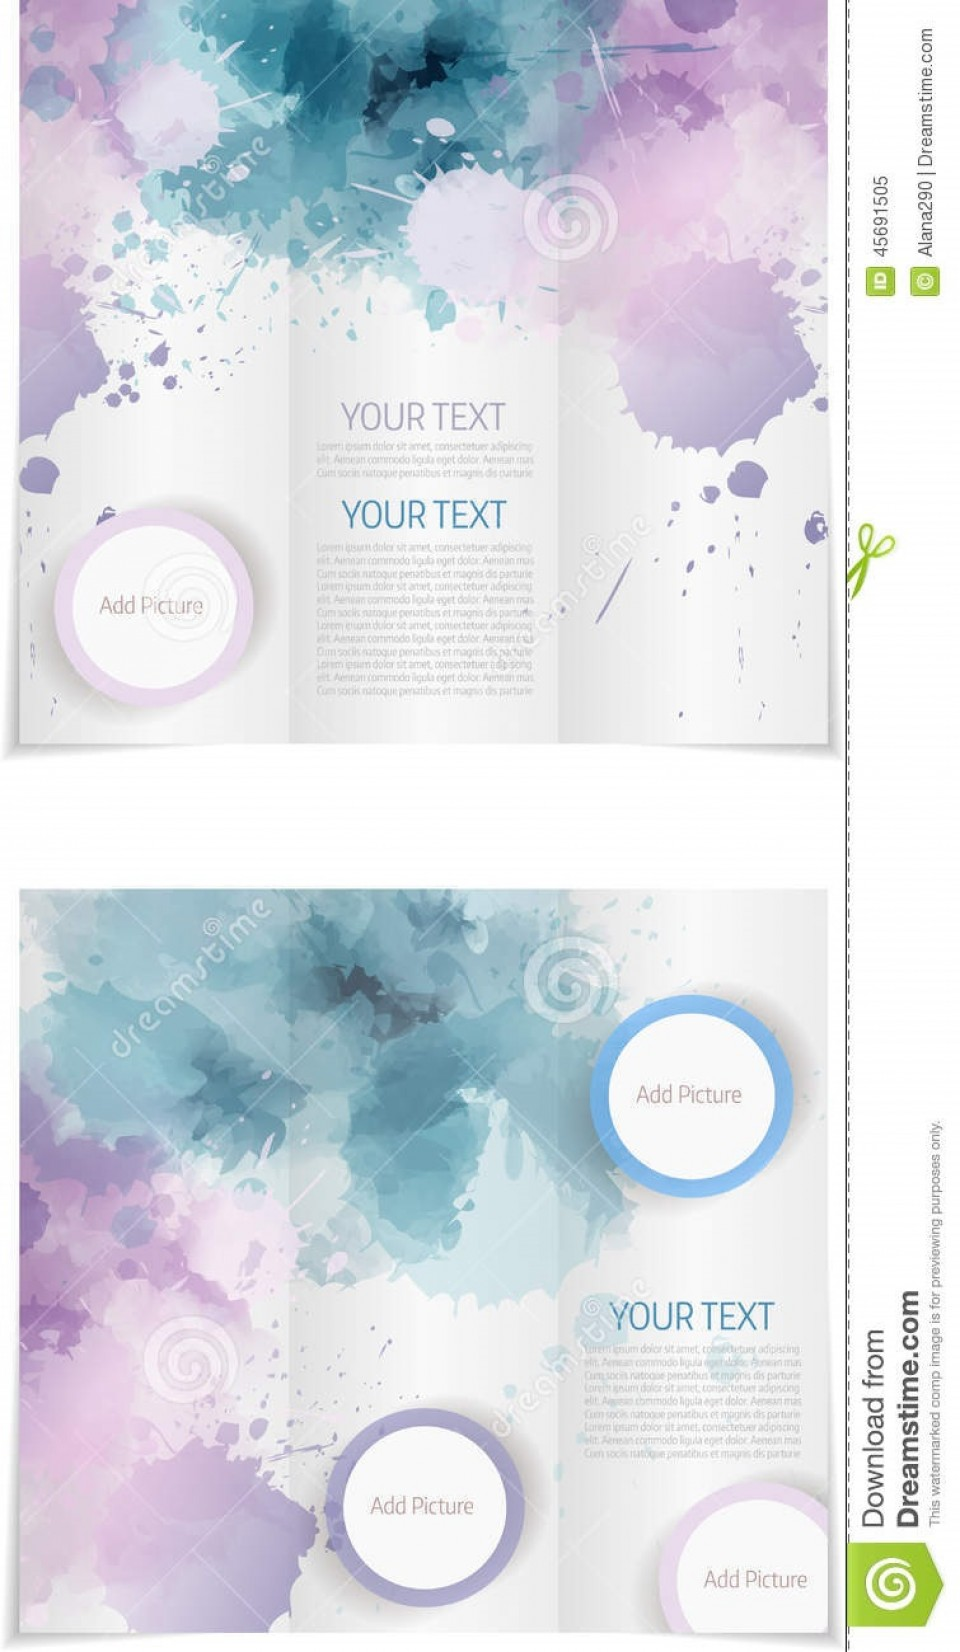 009 Stupendou Publisher Brochure Template Free Inspiration  Microsoft Download Tri Fold960